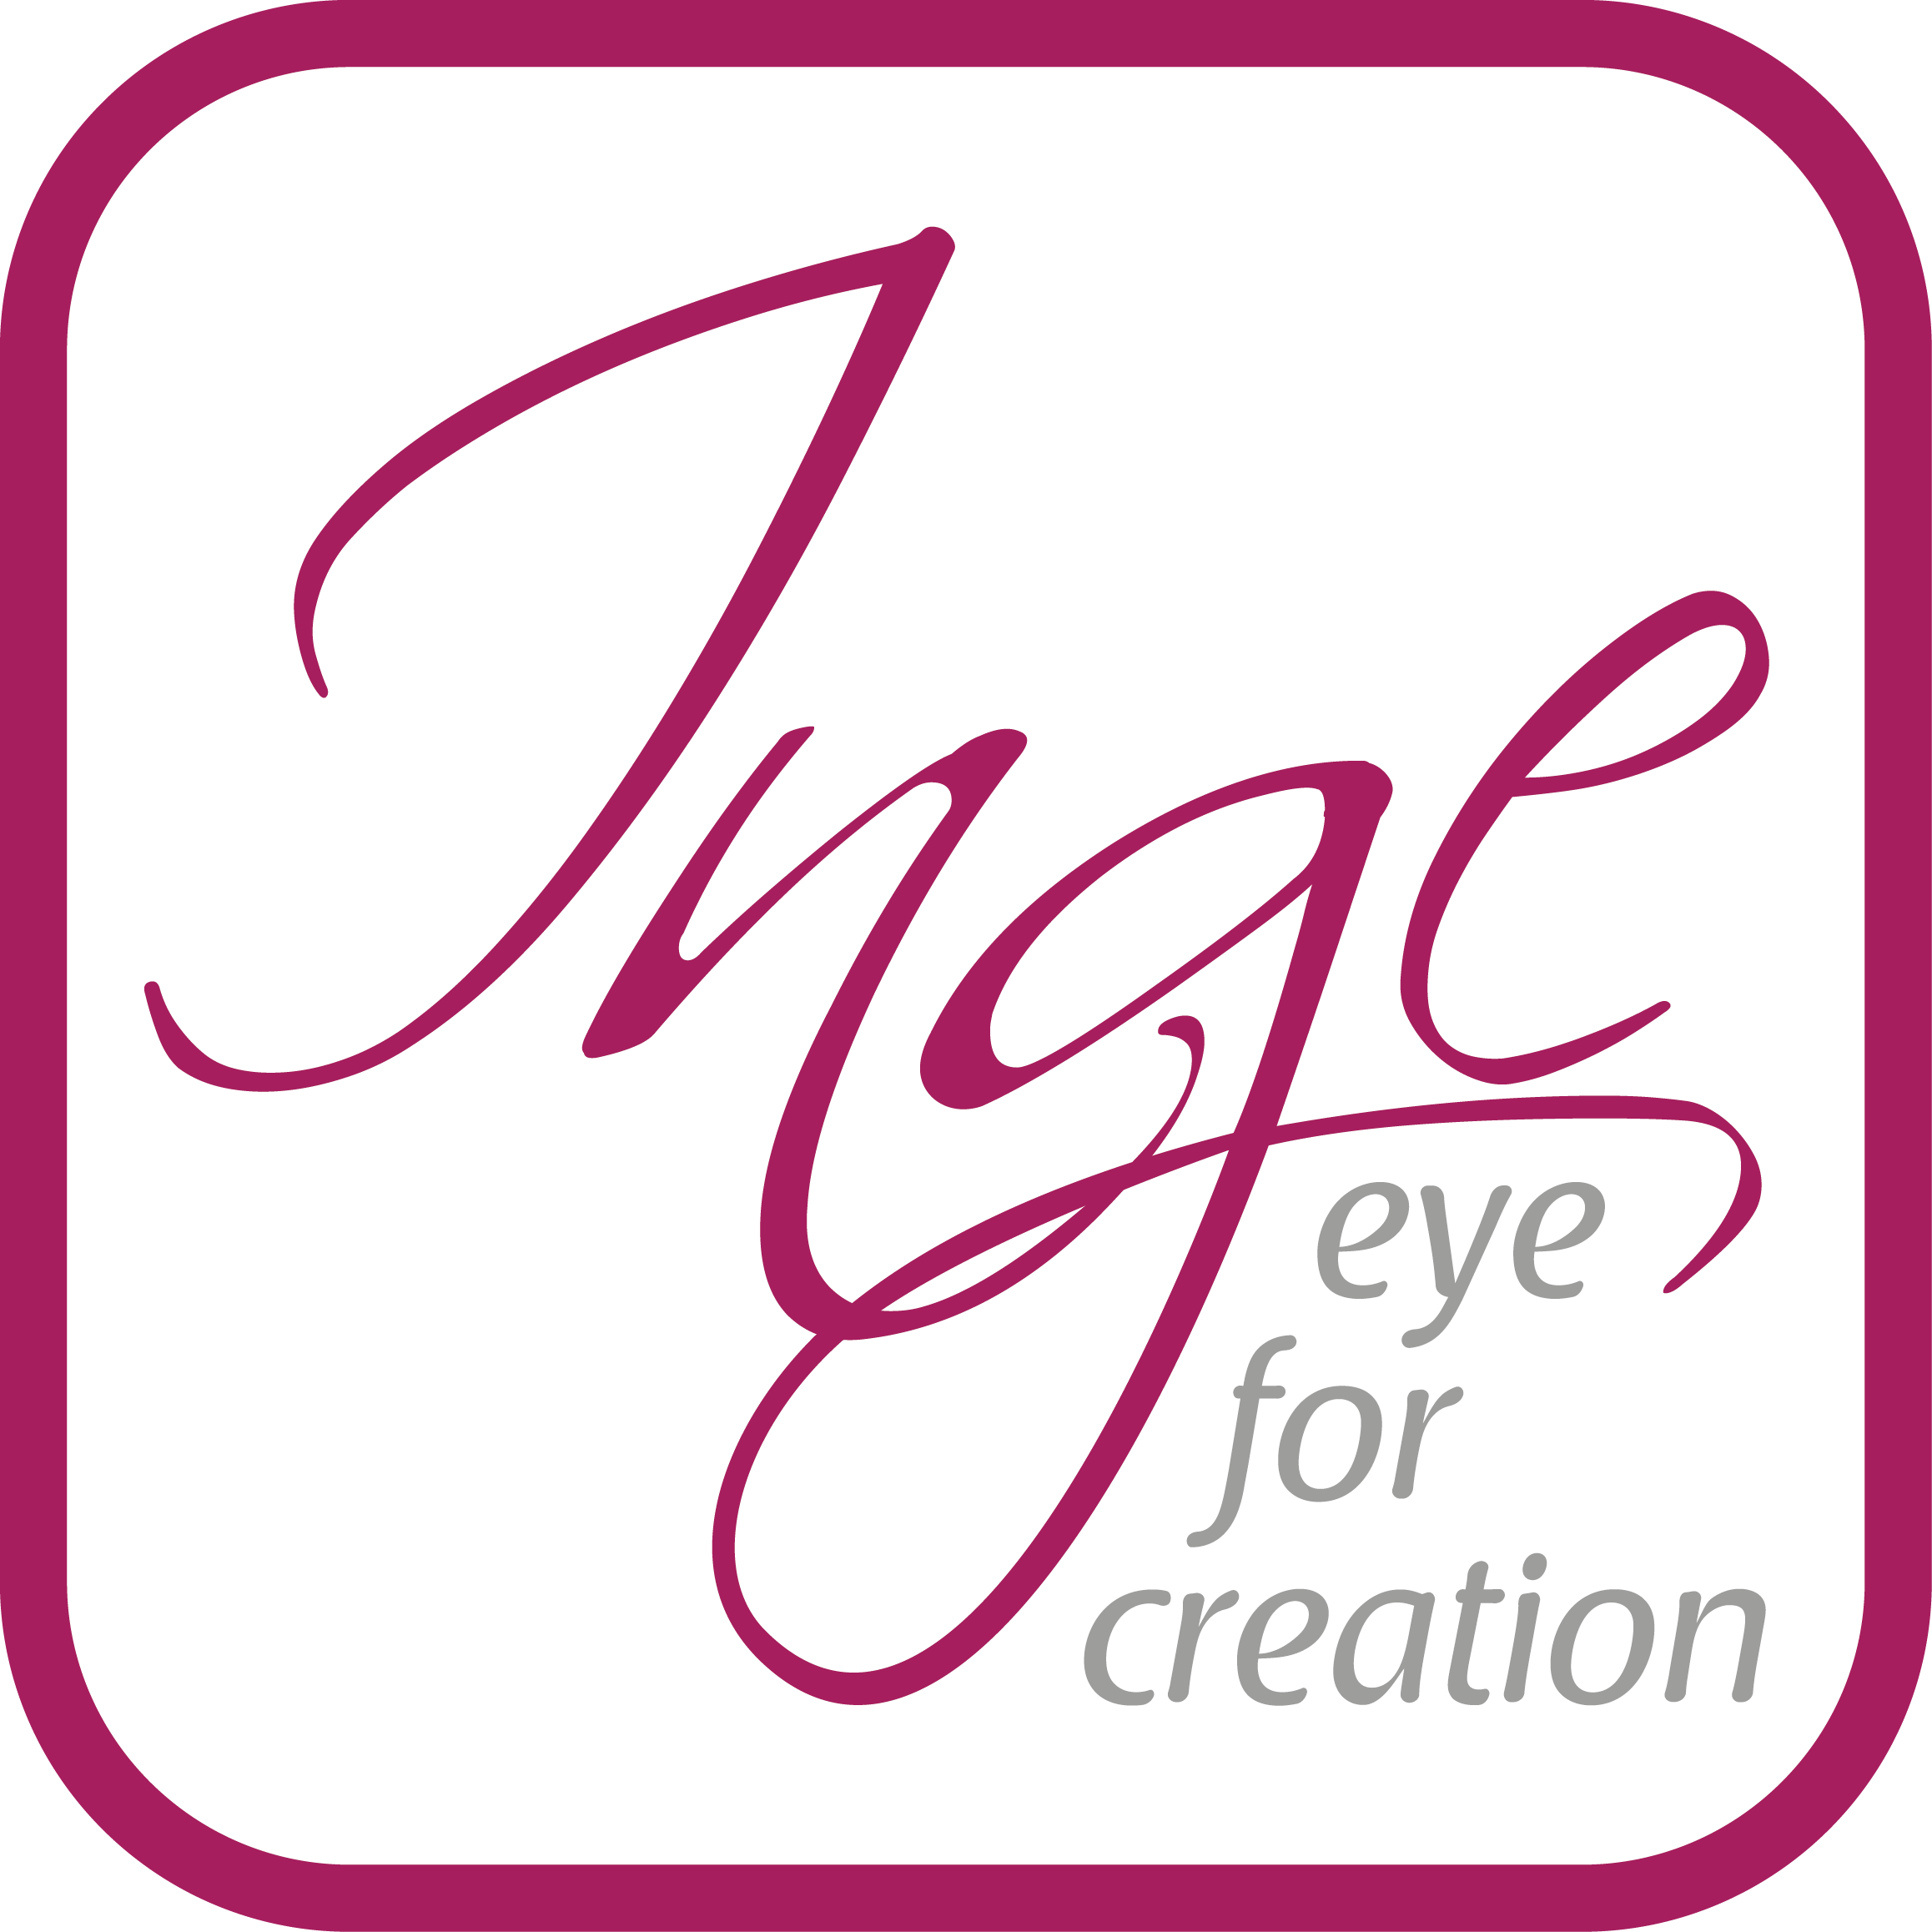 Inge - Eye for creation